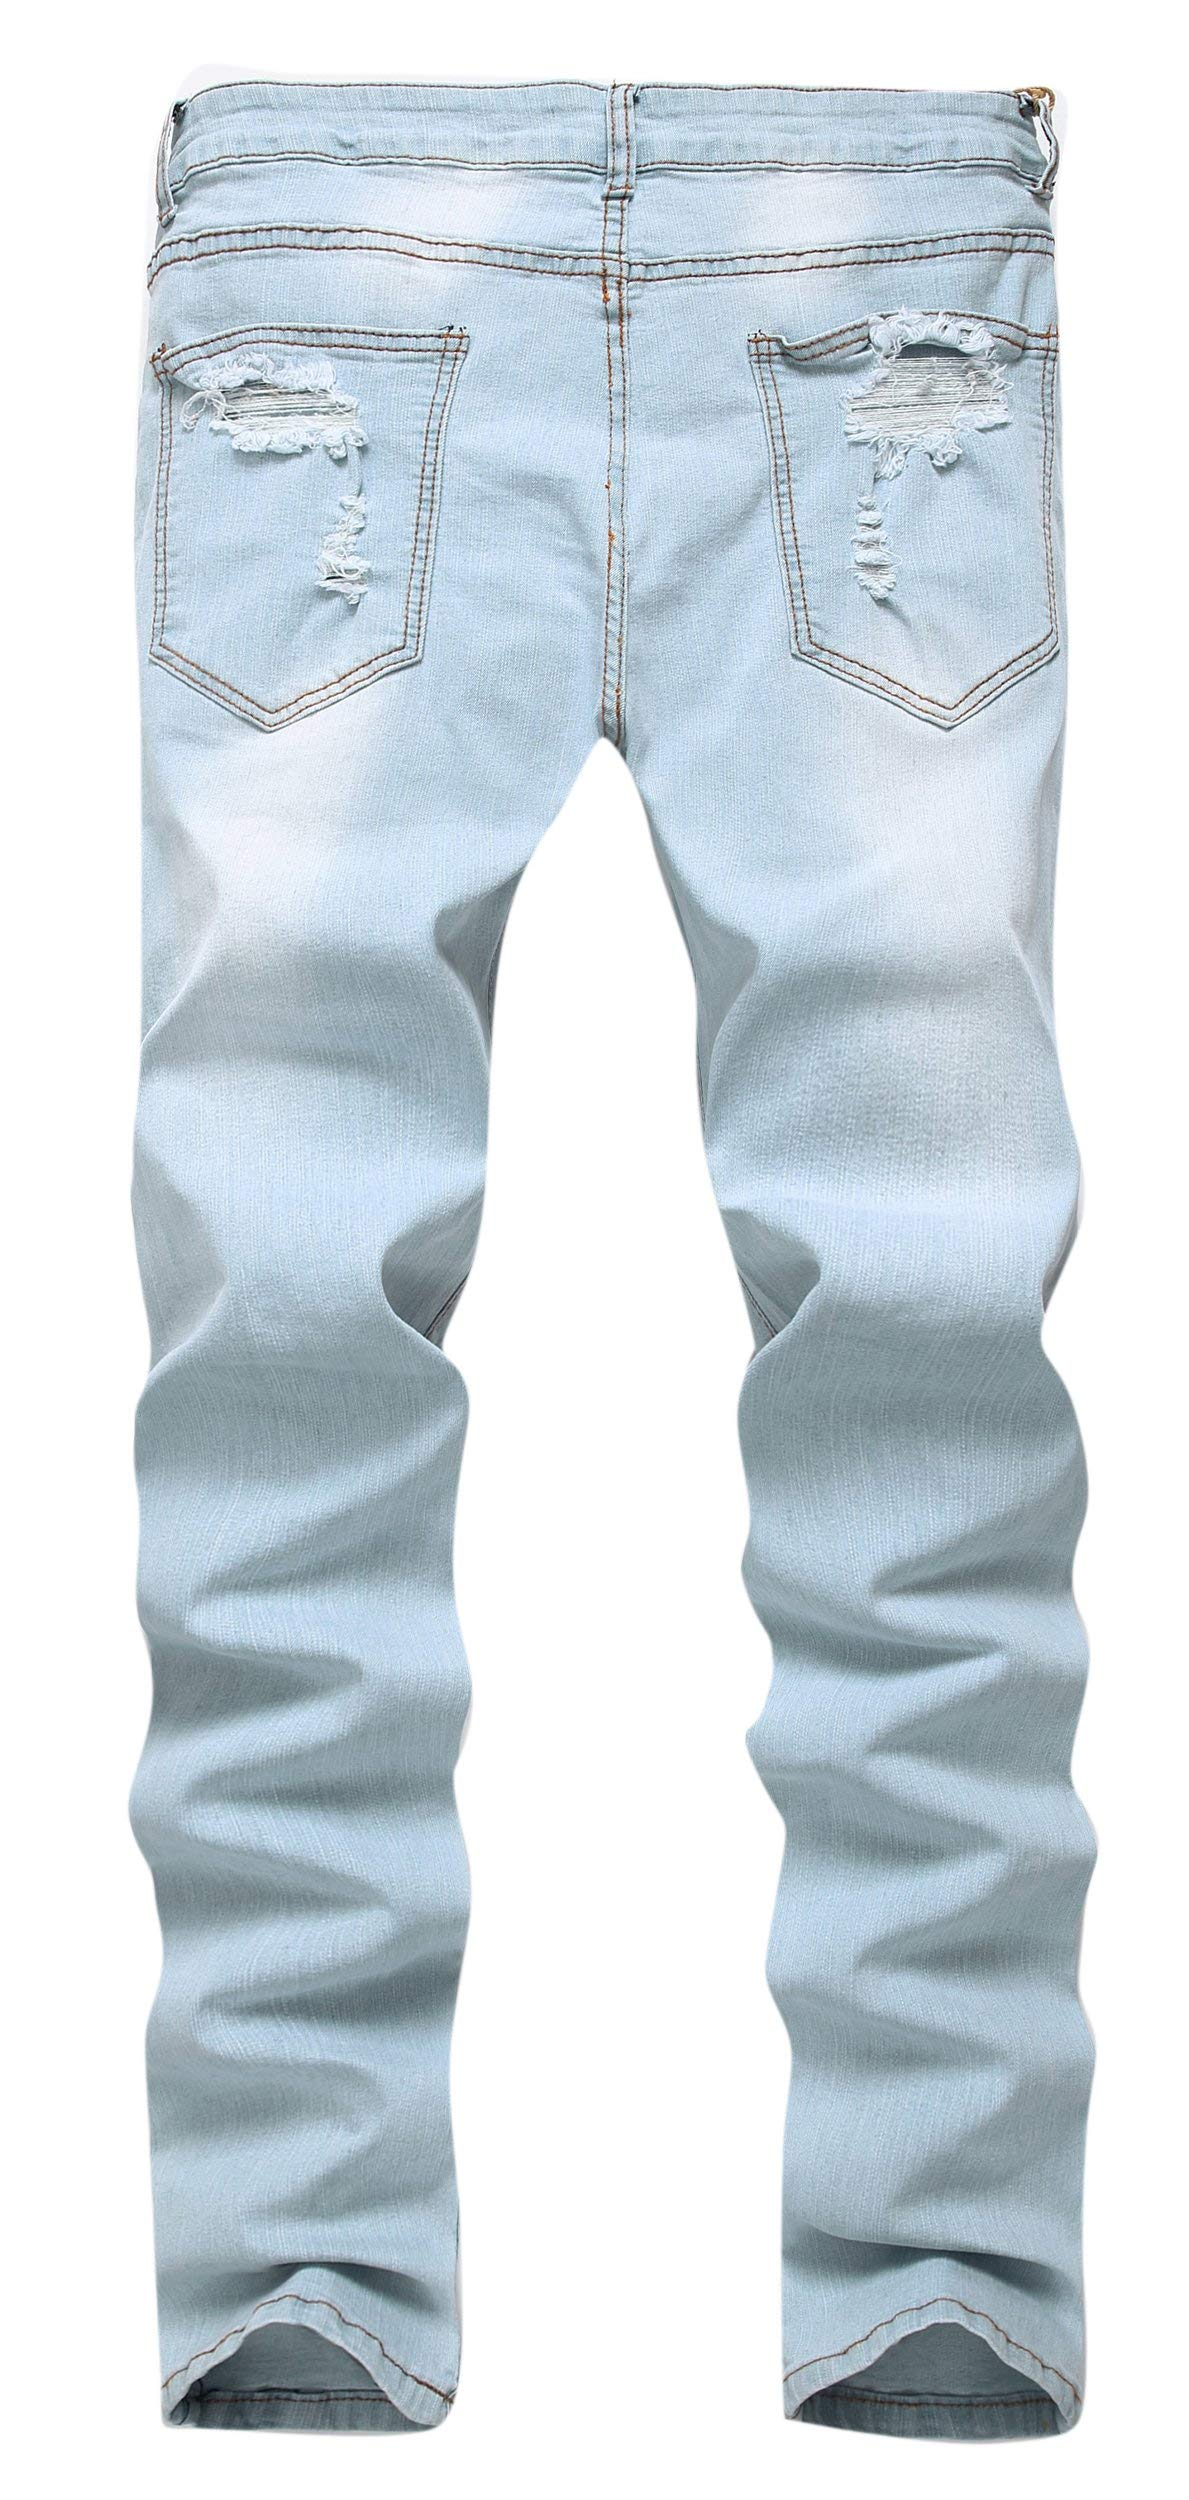 GARMOY Men's Fashion Light Blue Ripped Destroyed Flower Embroidered Skinny Fit Jeans Blue 32 by GARMOY (Image #2)